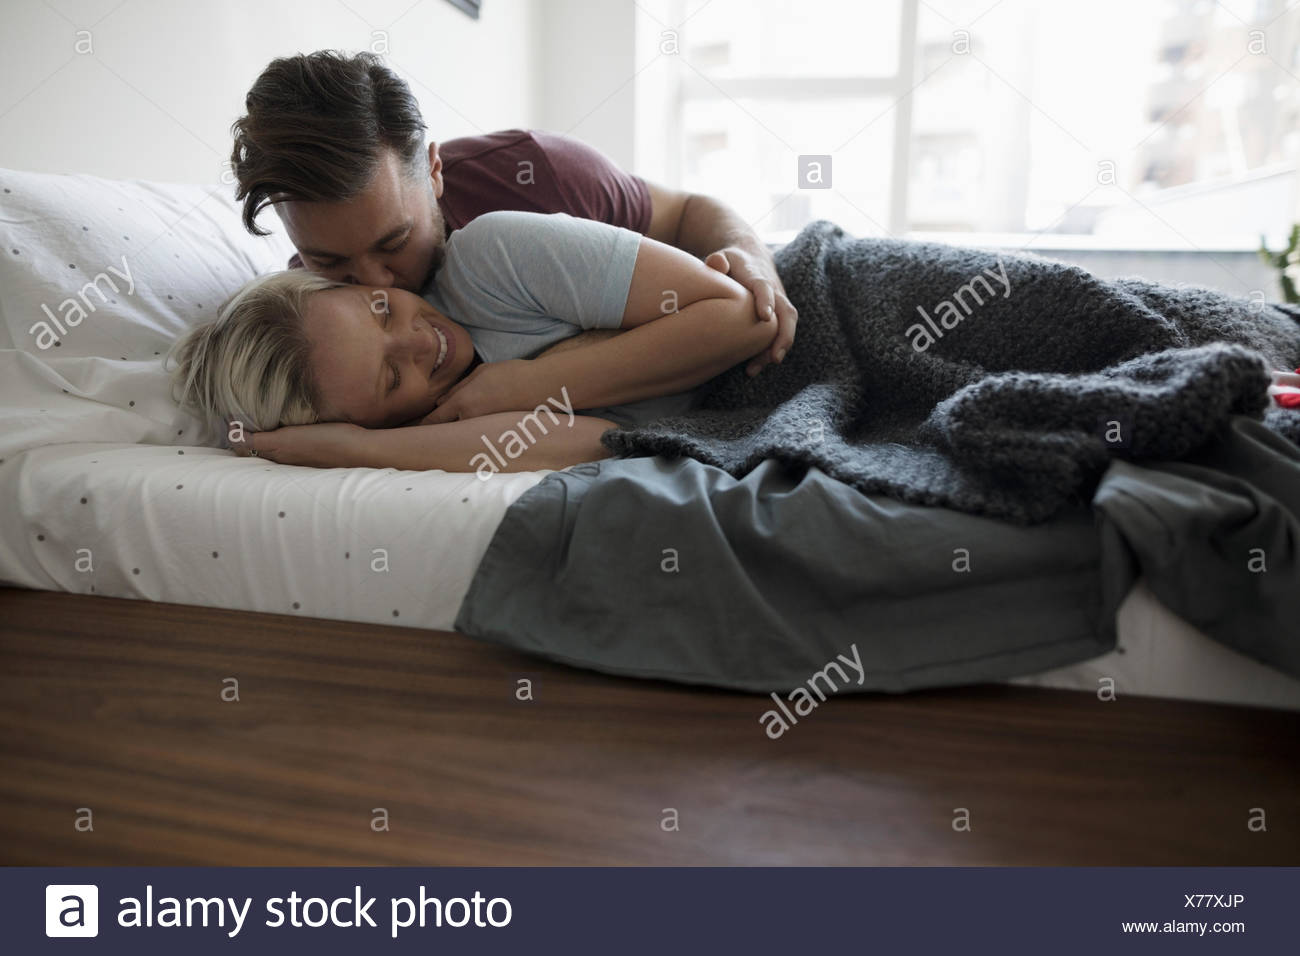 Affectionate,romantic couple kissing and cuddling in bed - Stock Image